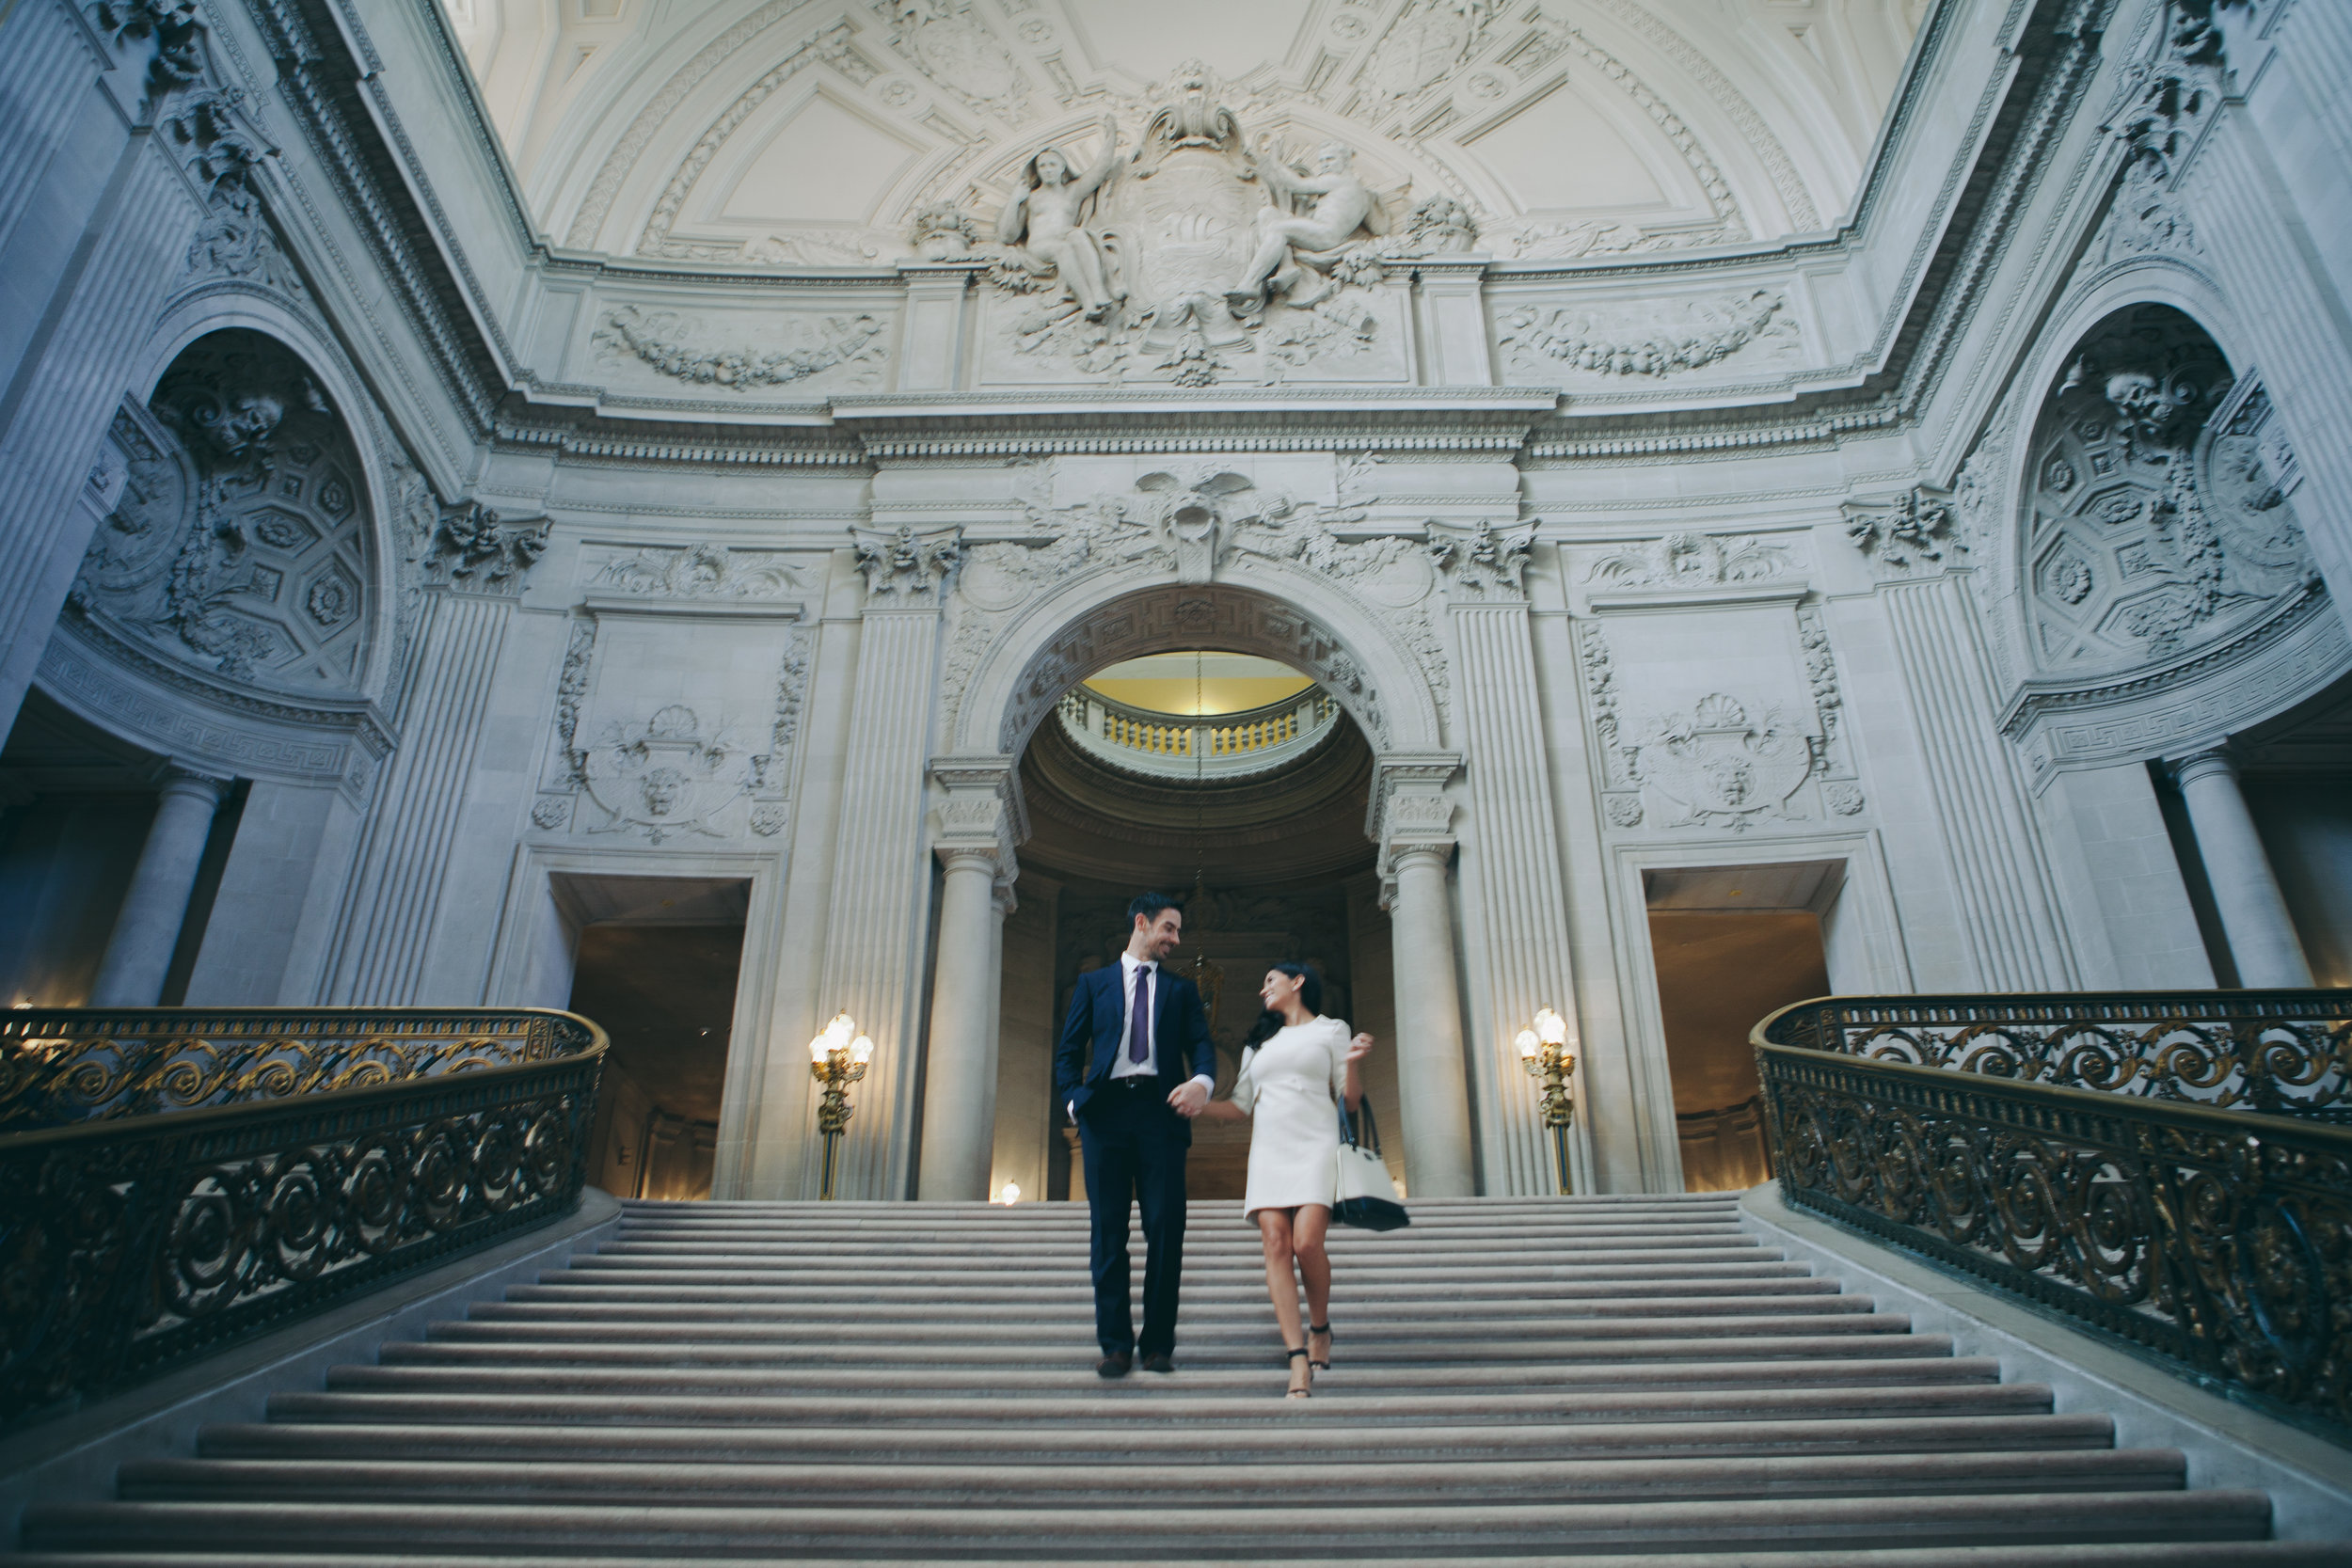 sally_barry_sanfrancisco_engagement_photography_05.jpg